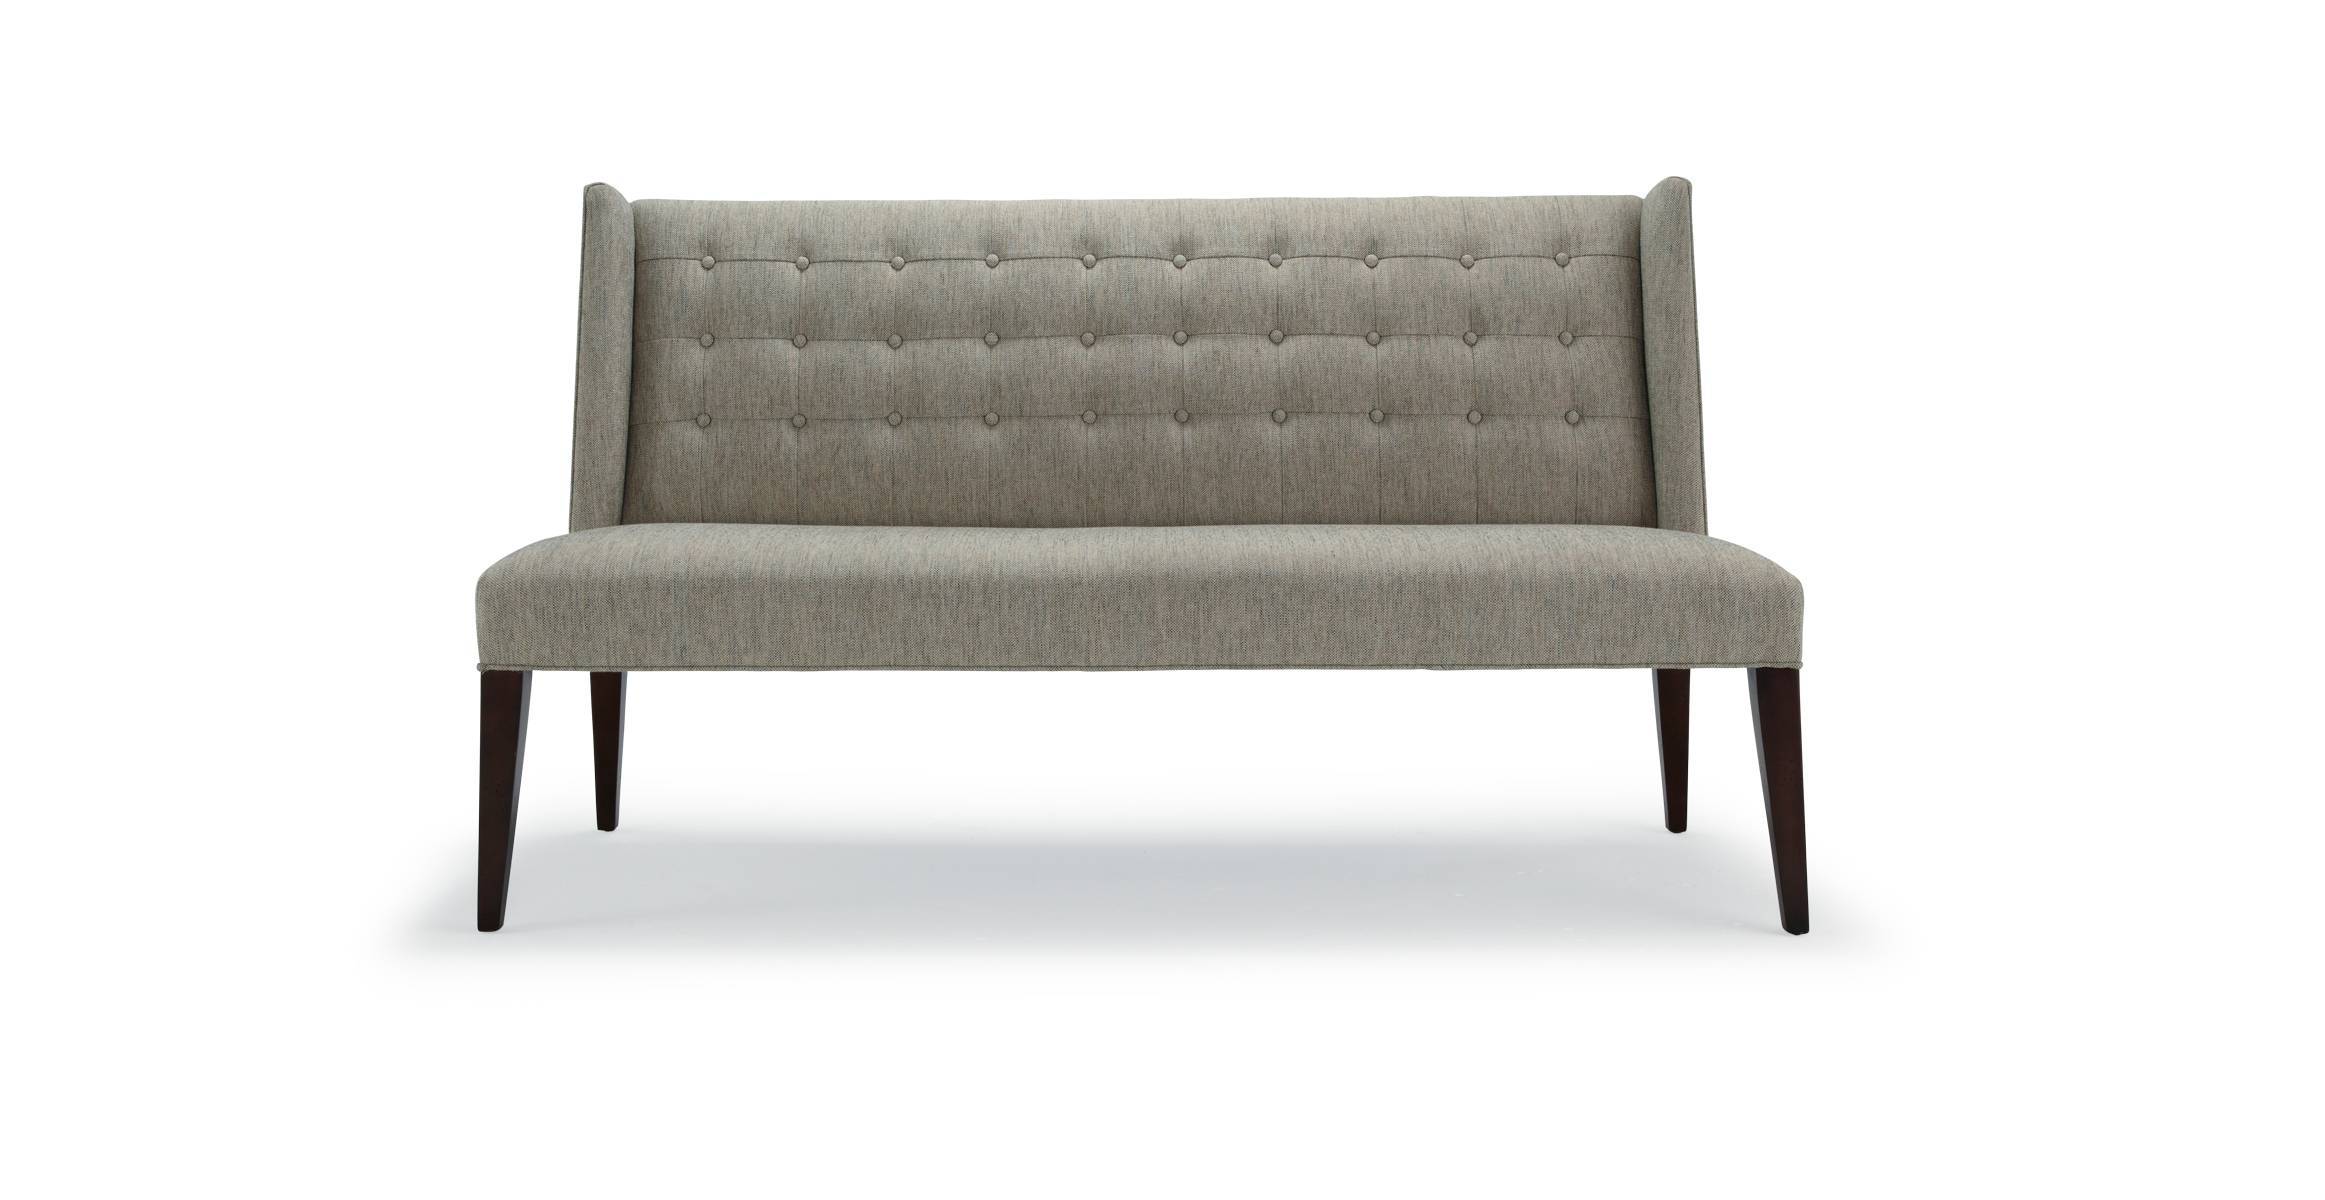 Furniture: Modern Banquette Bench | Banquettes | Banquette Bench within Banquette Sofas (Image 14 of 15)